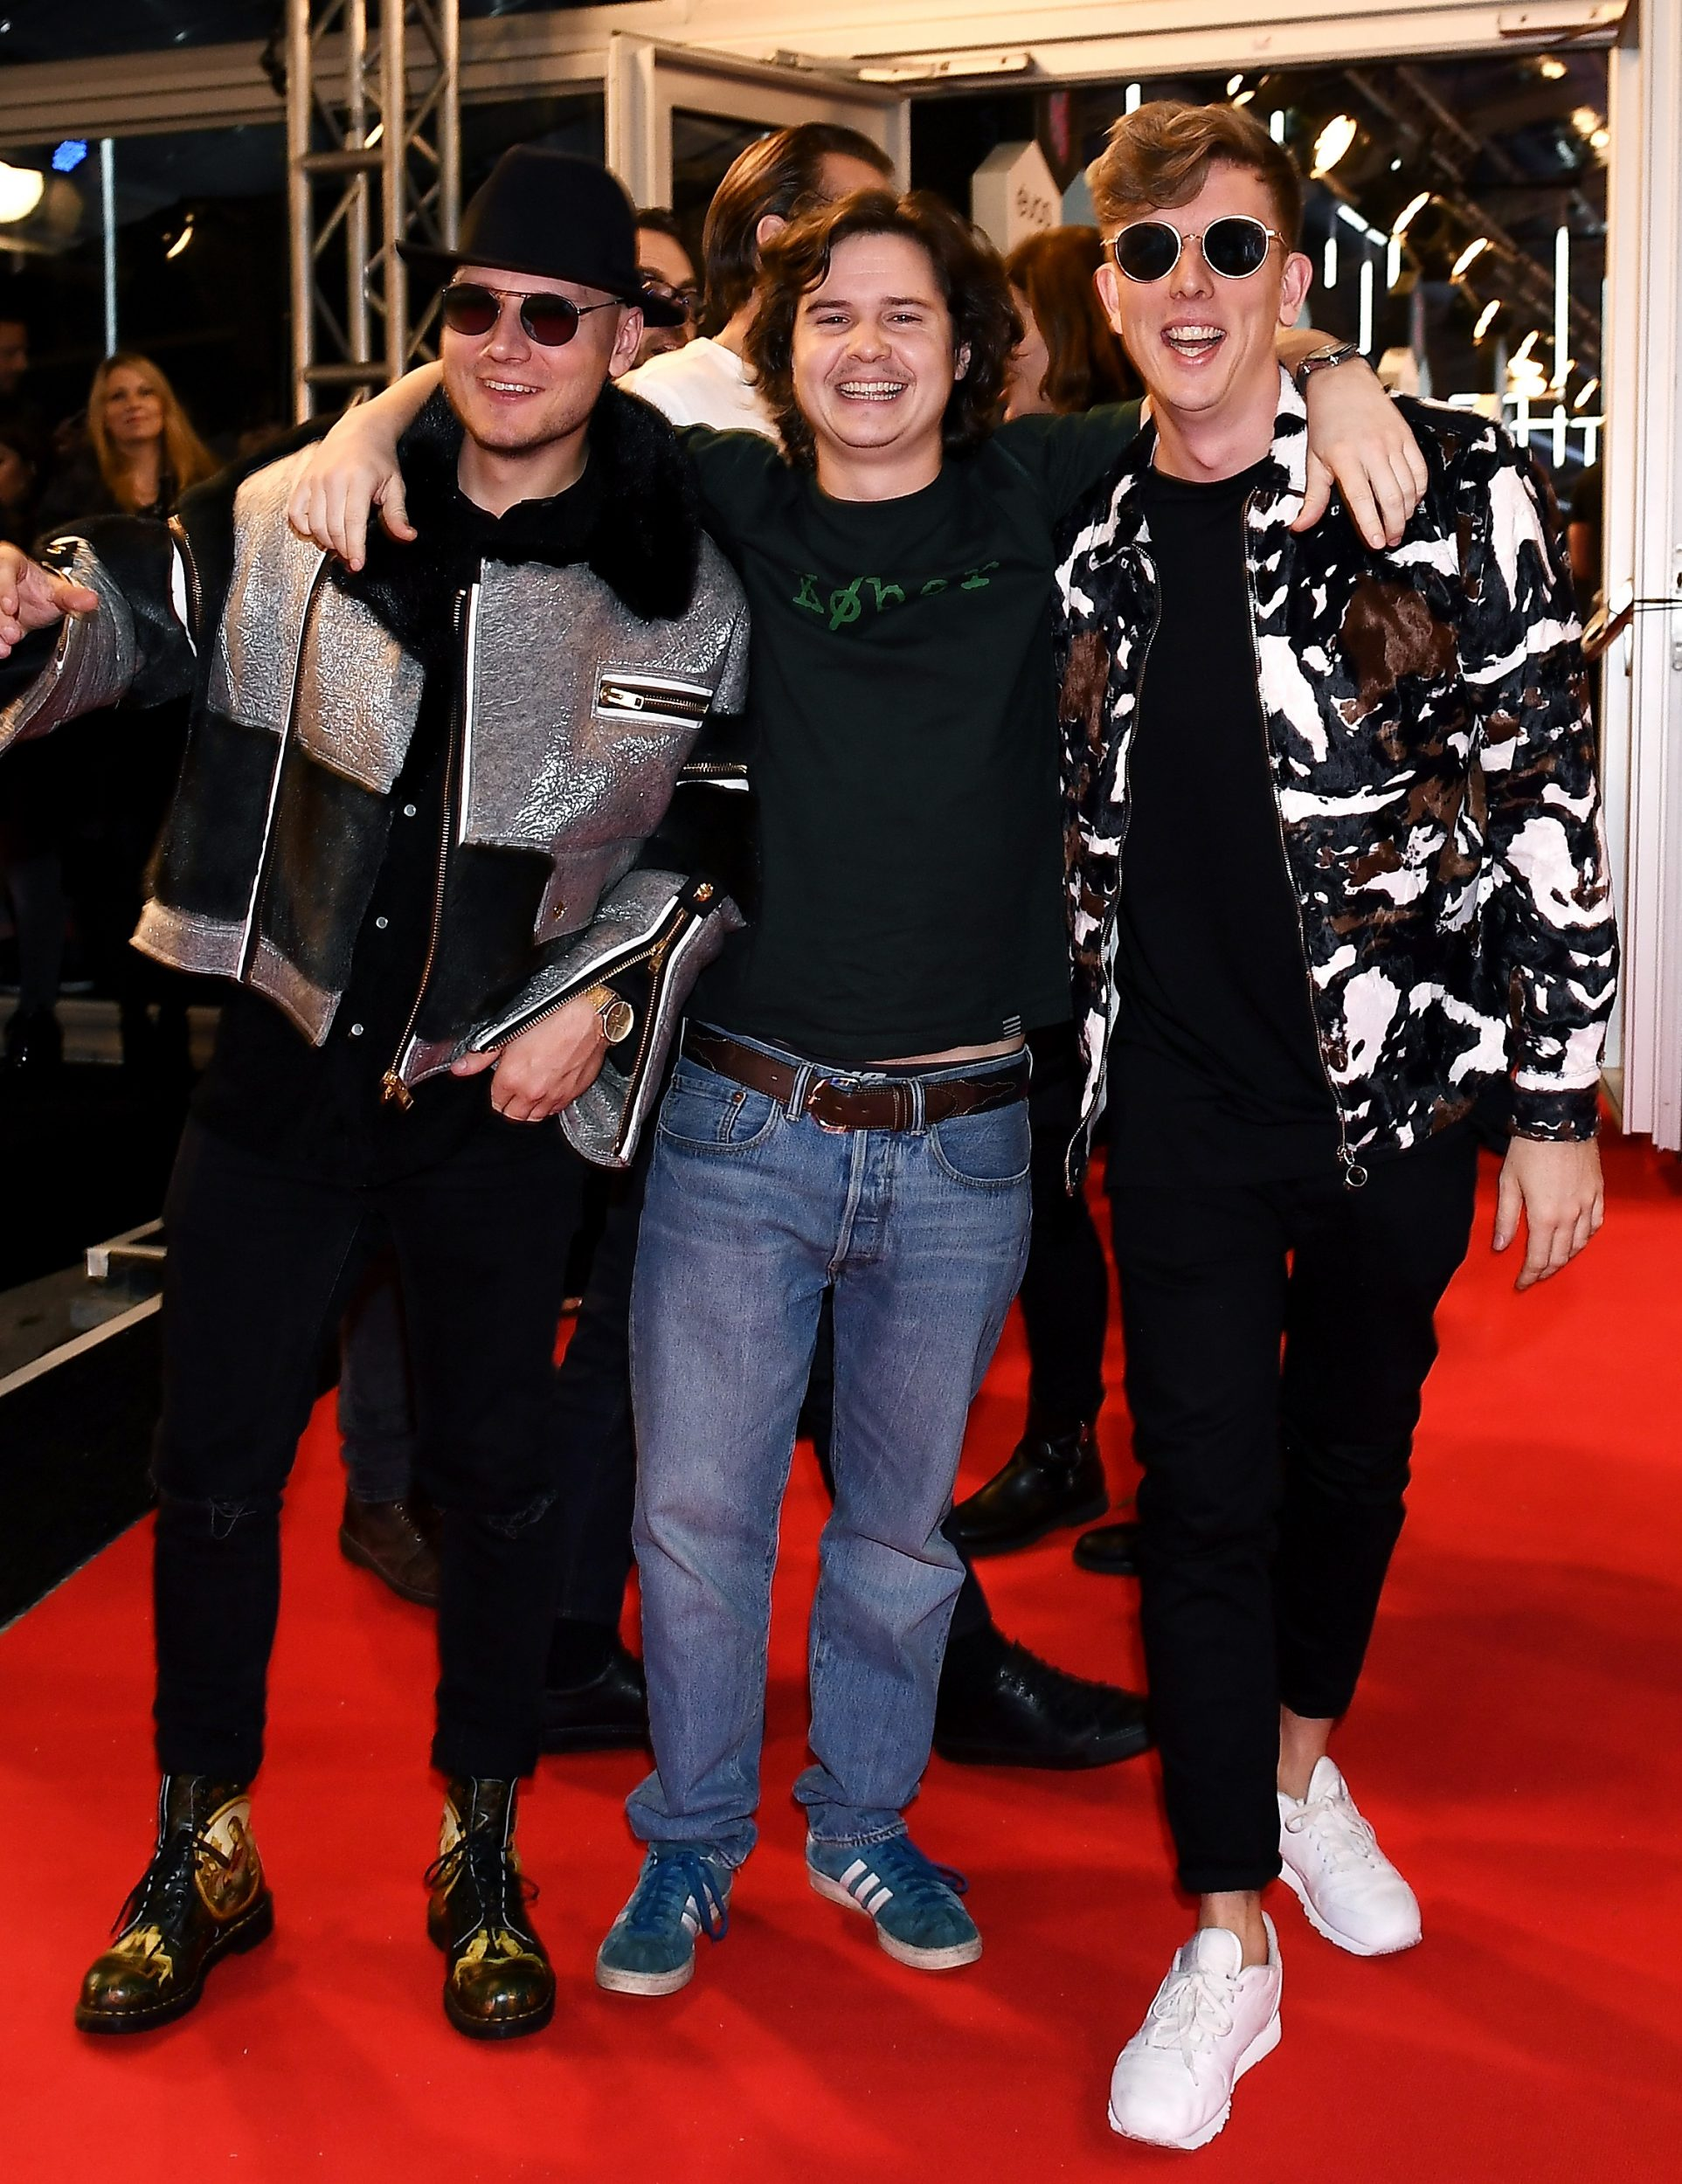 ROTTERDAM, NETHERLANDS - NOVEMBER 06: (EXCLUSIVE COVERAGE) (L-R) Mark Falgren, Lukas Forchhammer and Morten Ristorp of Lukas Graham attend the MTV Europe Music Awards 2016 on November 6, 2016 in Rotterdam, Netherlands. (Photo by Gareth Cattermole/MTV 2016/Getty Images for MTV) *** Local Caption *** Morten Ristorp;Mark Falgren;Lukas Forchhammer